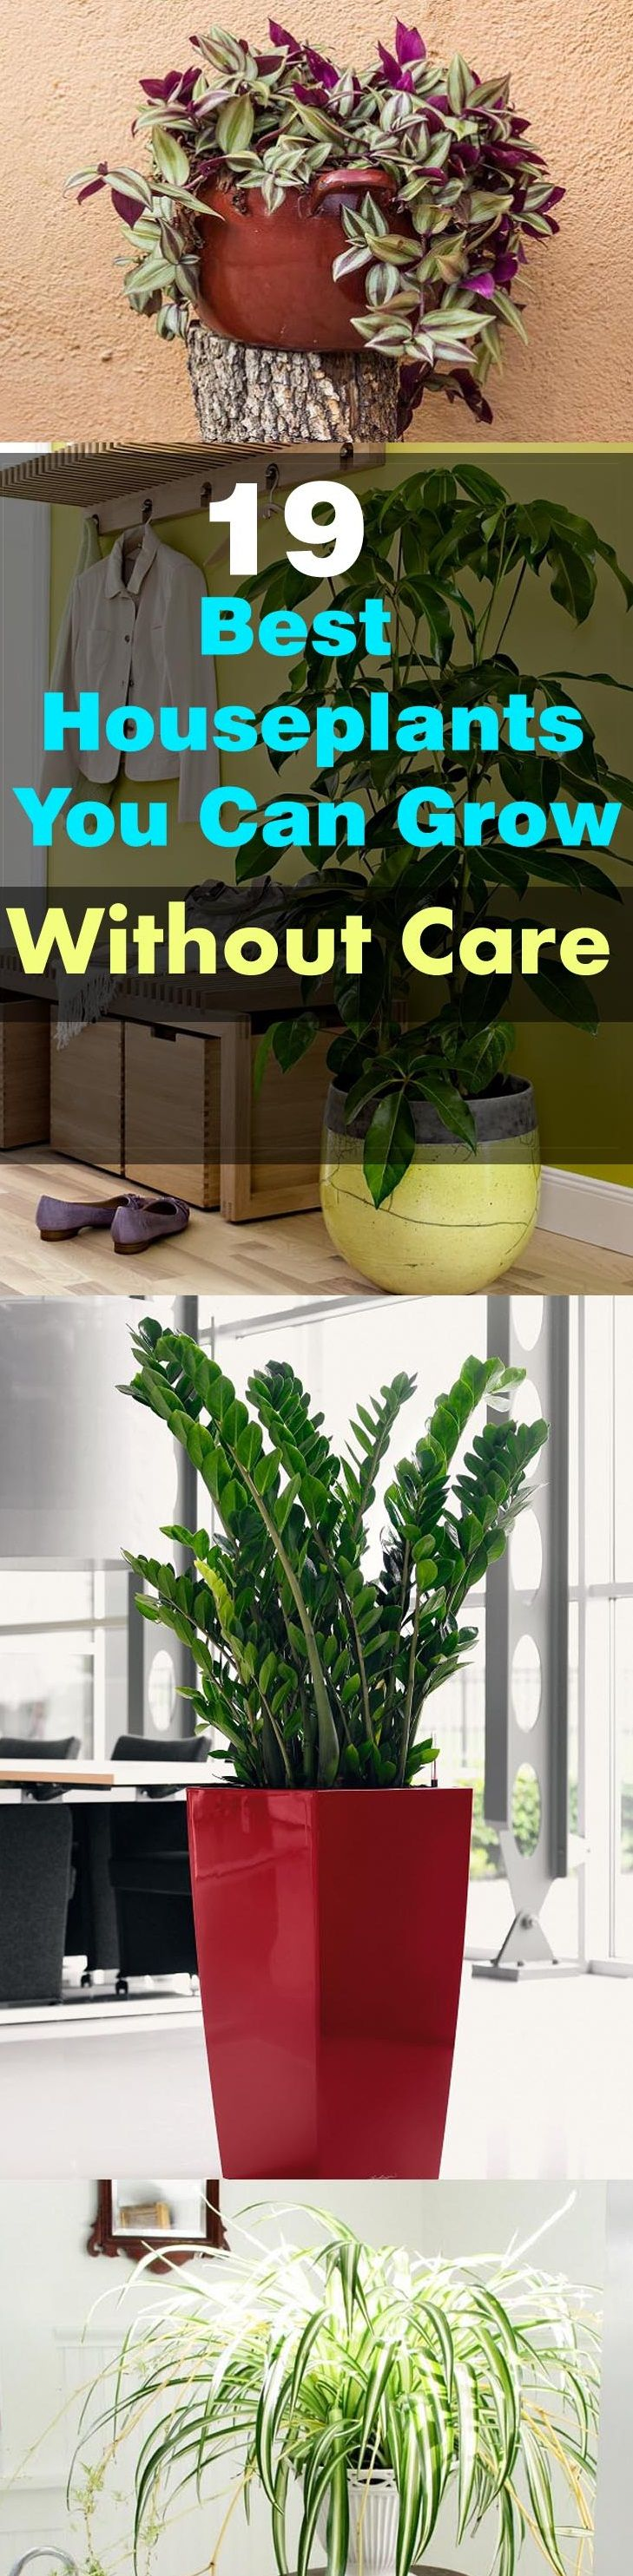 livedan330.com wp-content uploads 19-best-houseplants-that-grow-without-care.jpg